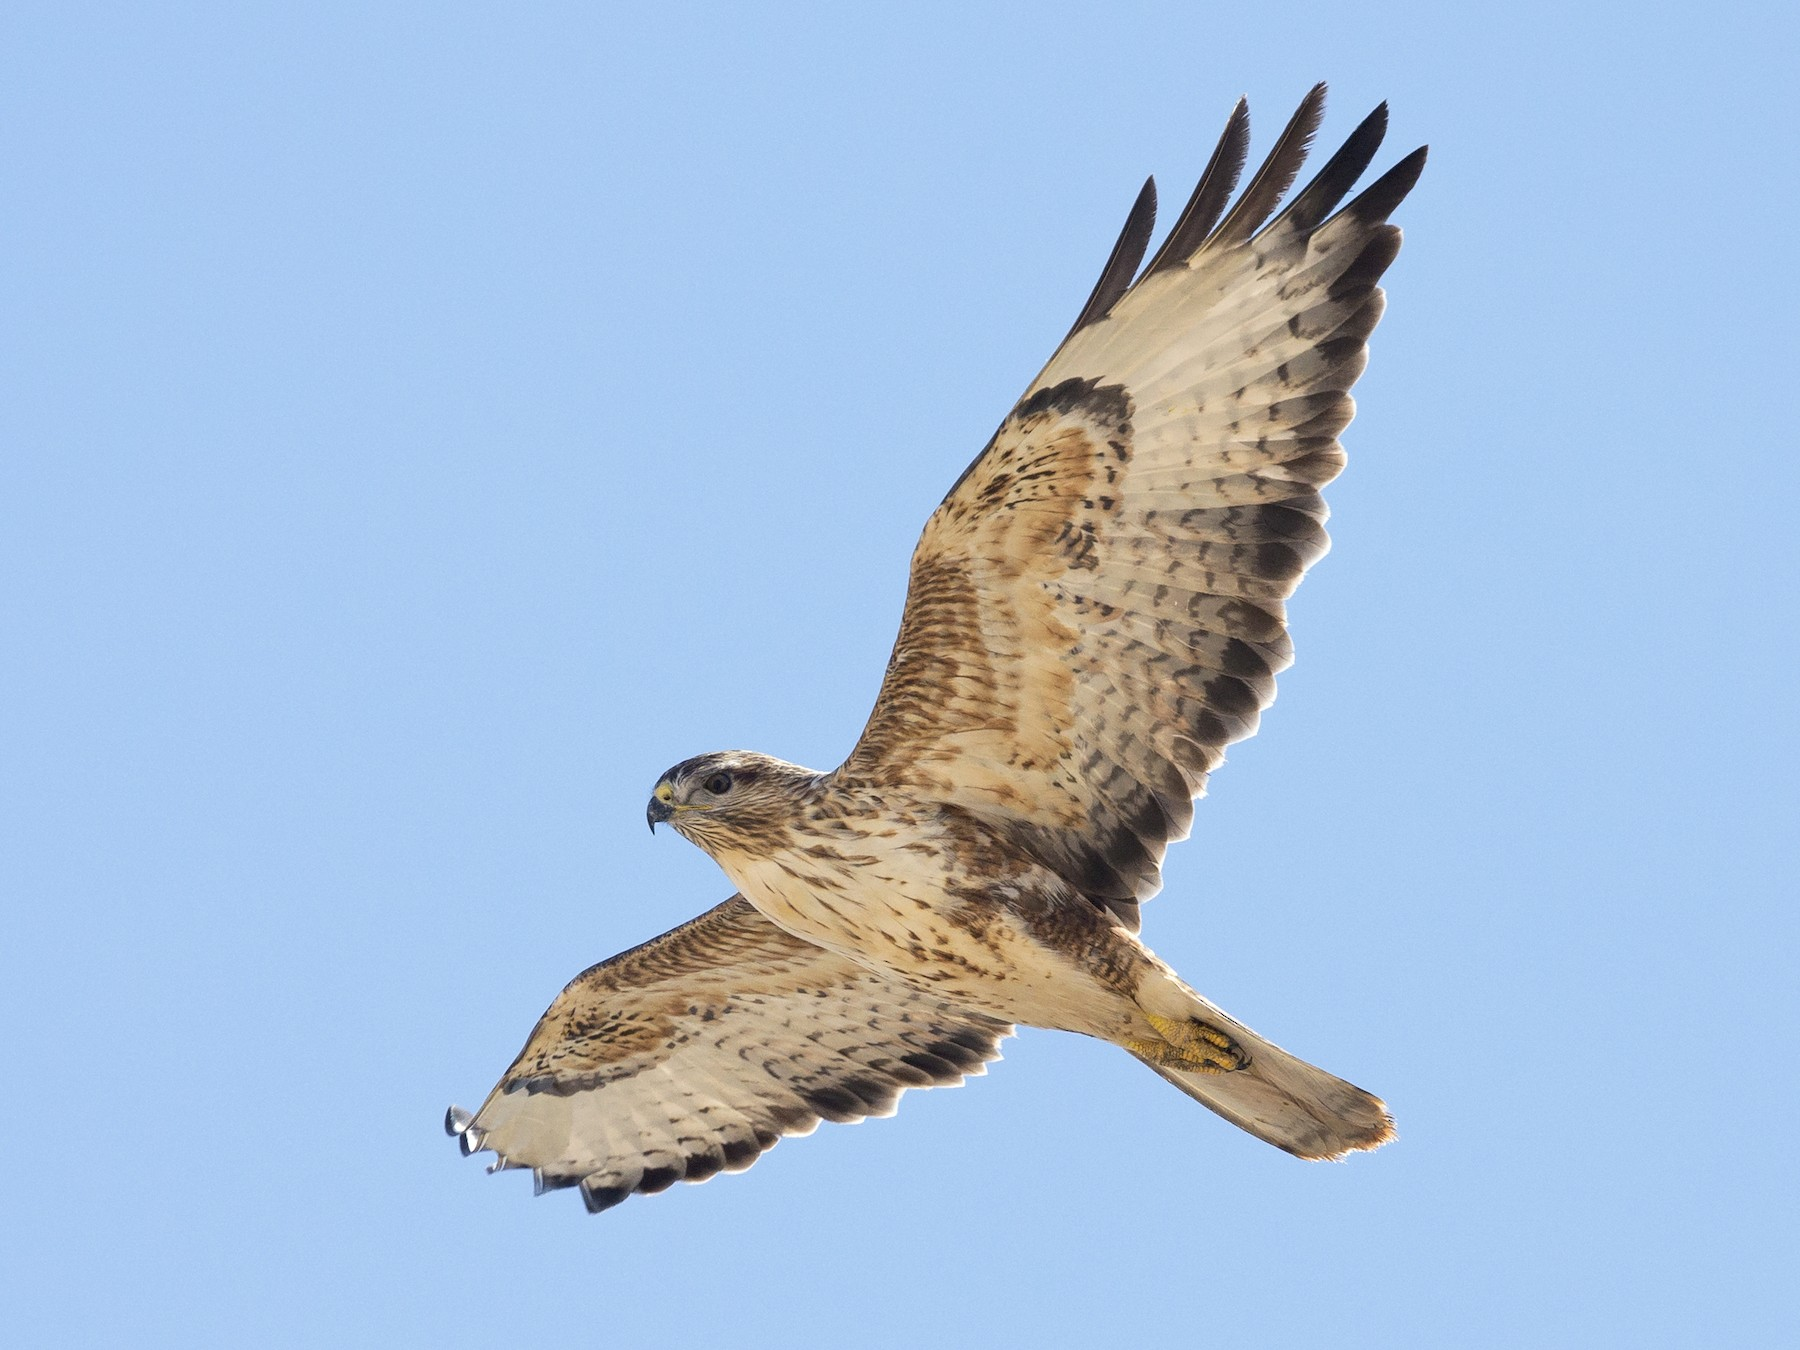 Common Buzzard - Omar alshaheen